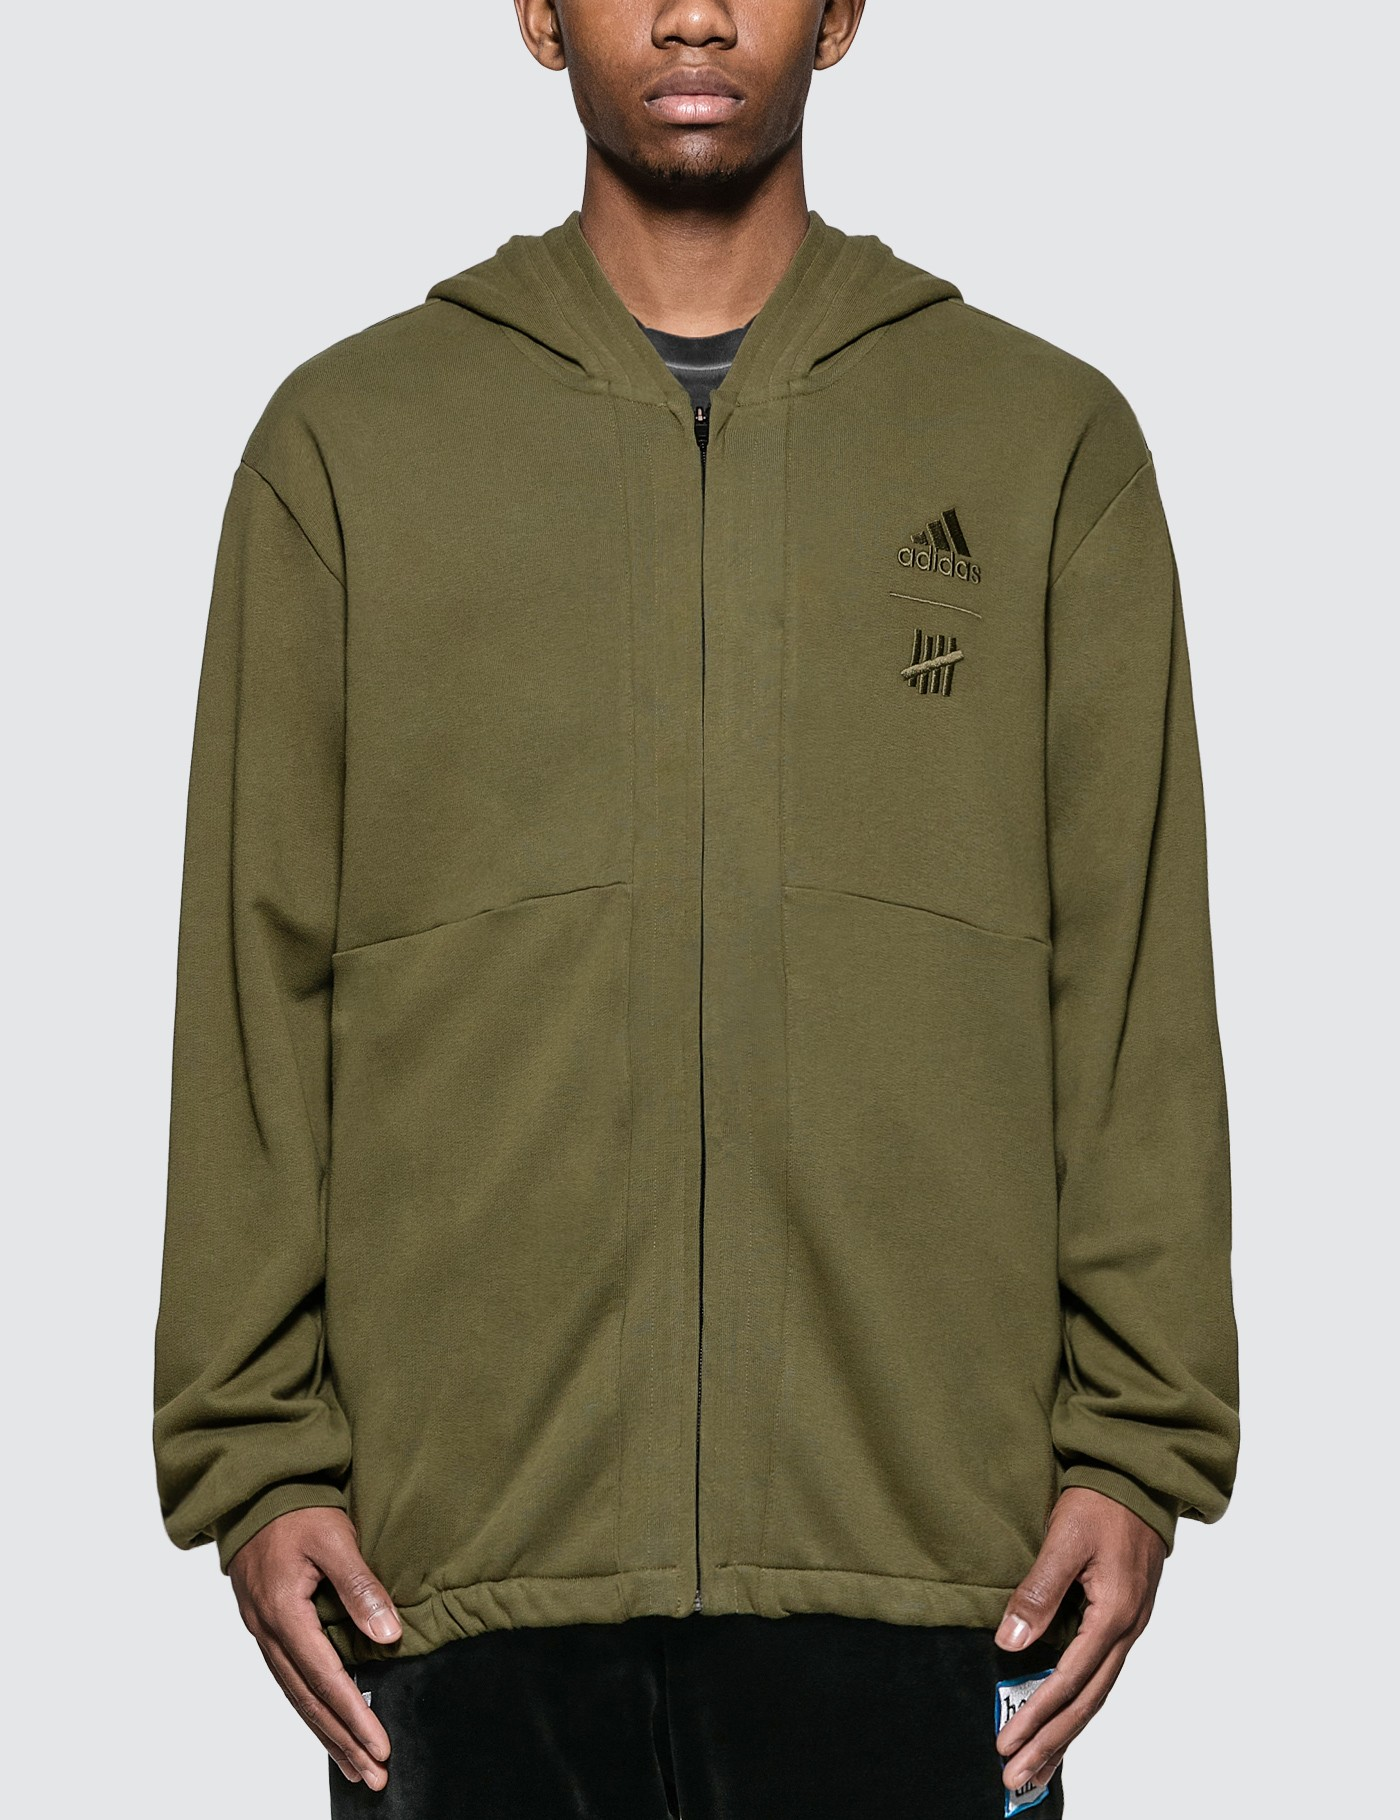 afd421d6 Buy Original Adidas Originals UNDEFEATED x Adidas Full Zip Hoodie at ...